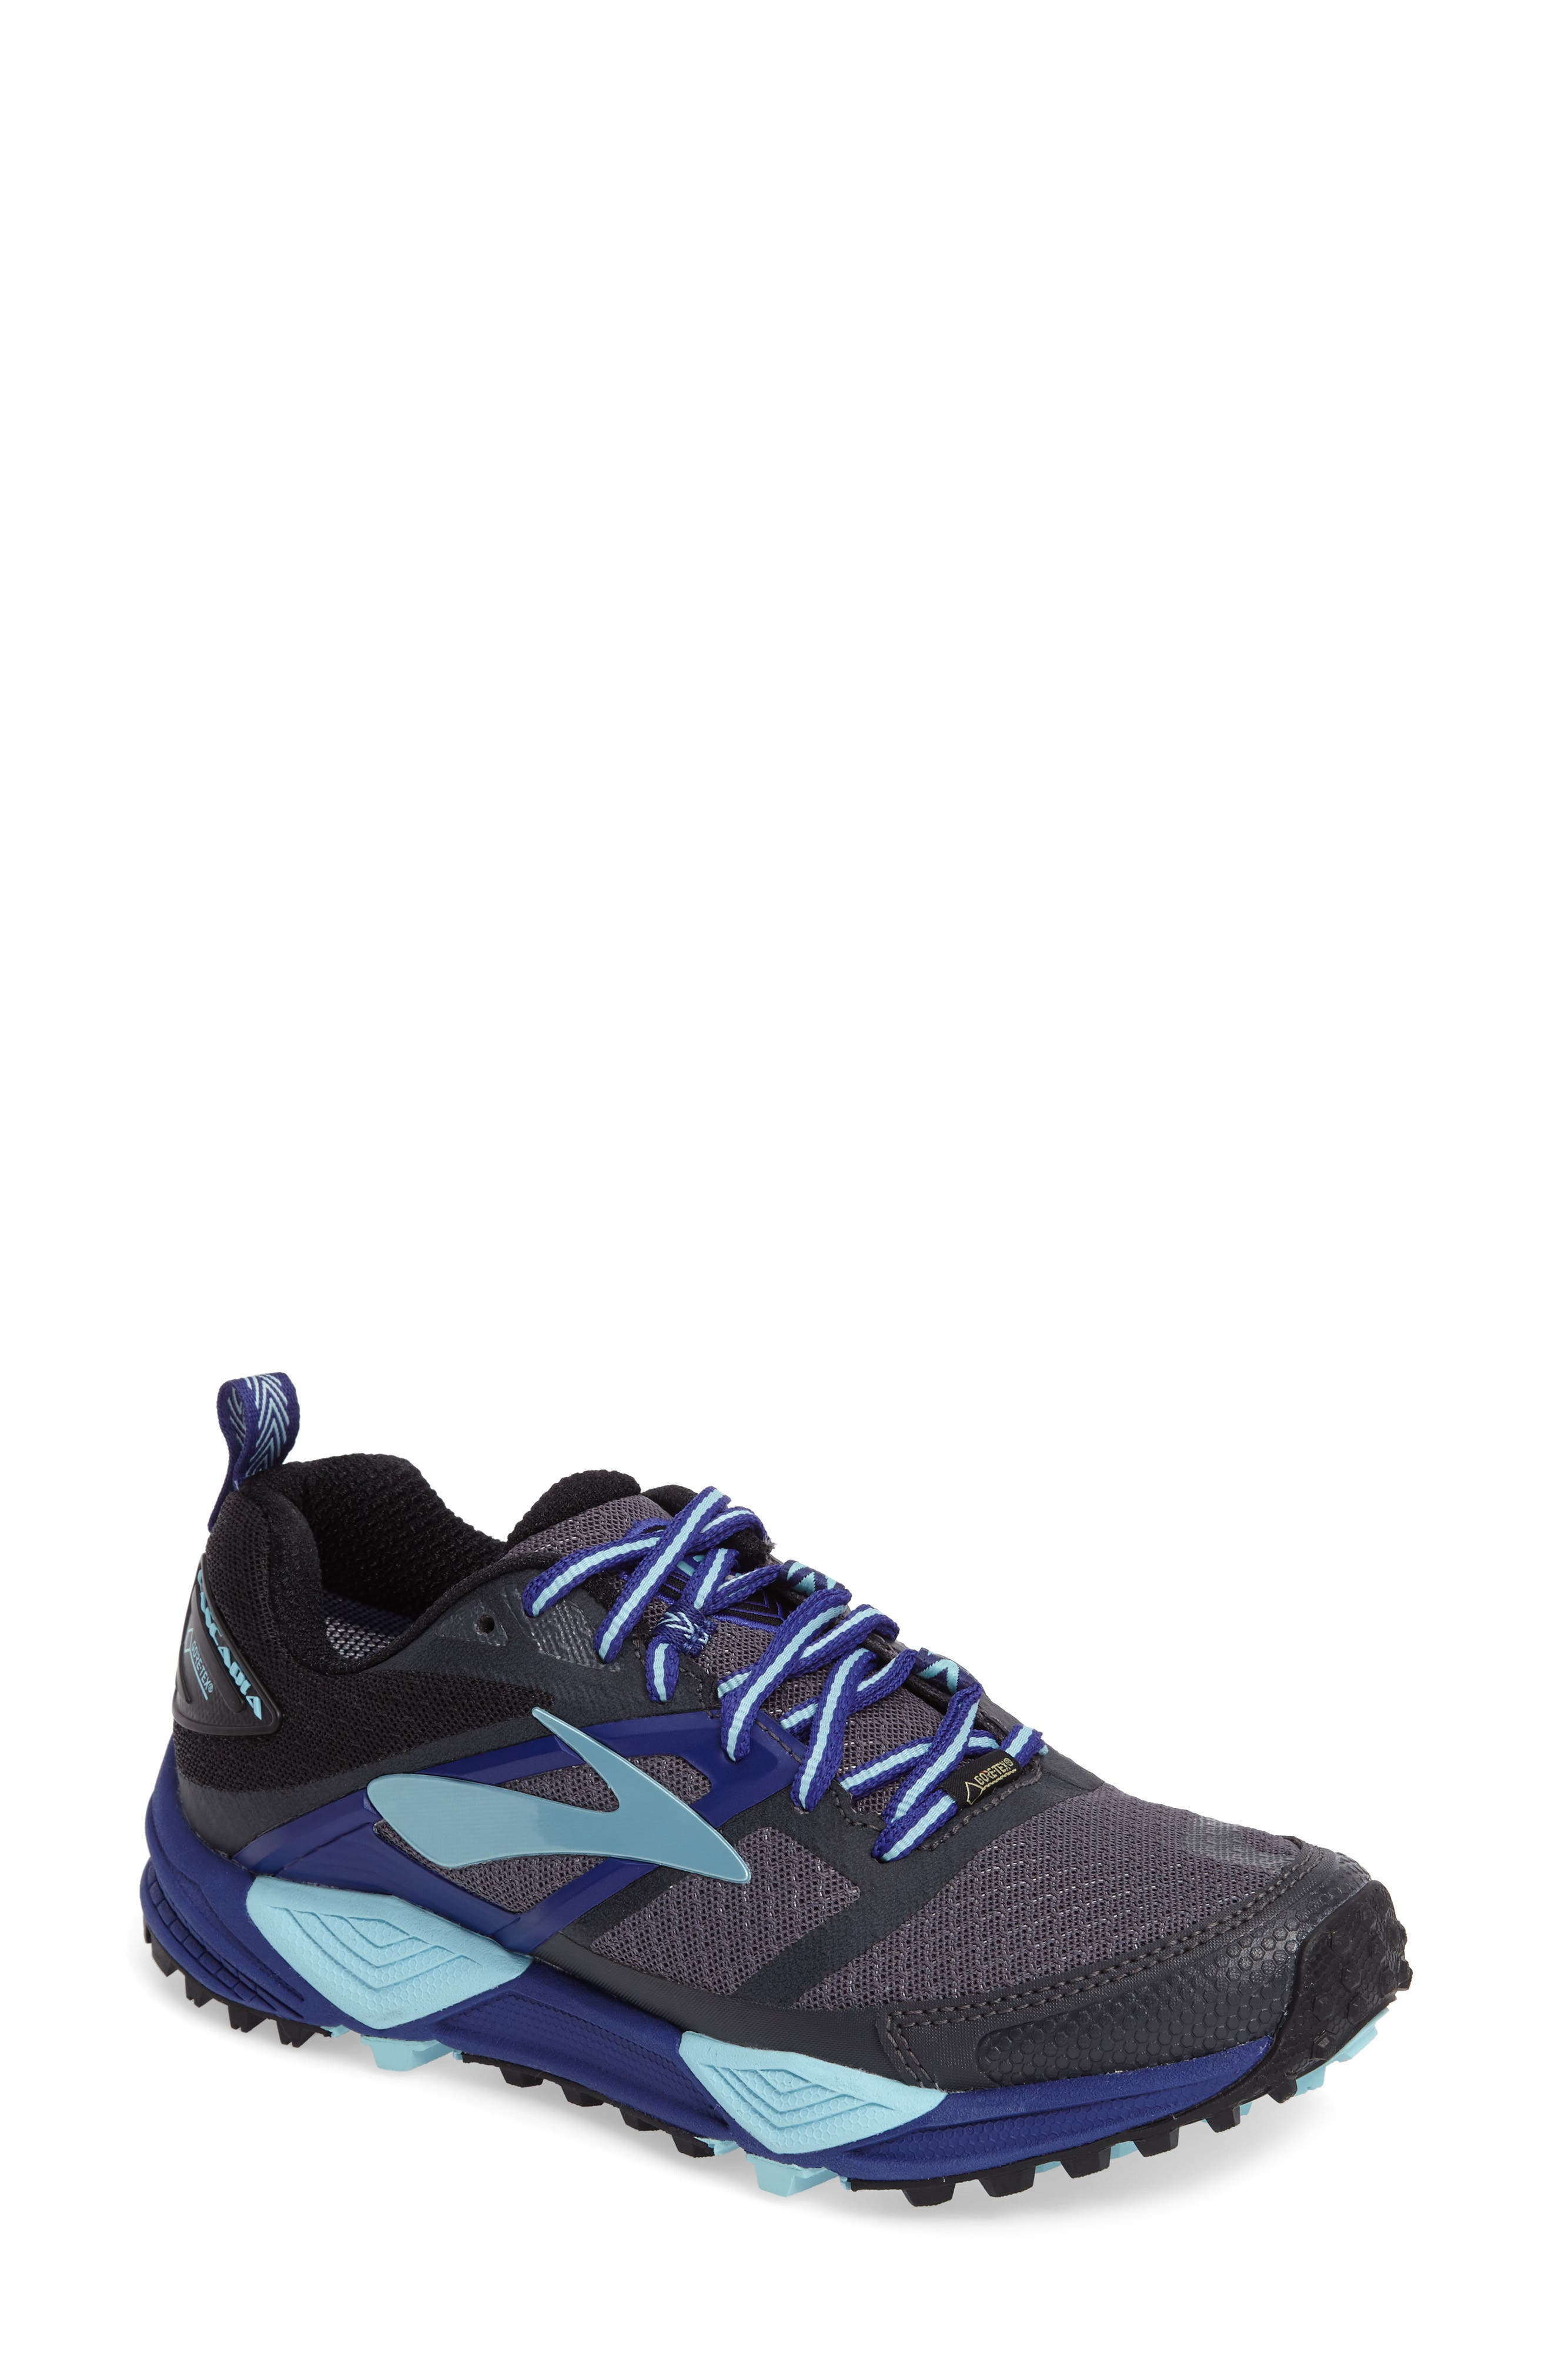 Cascadia 12 GTX Trail Running Shoe,                             Main thumbnail 1, color,                             001